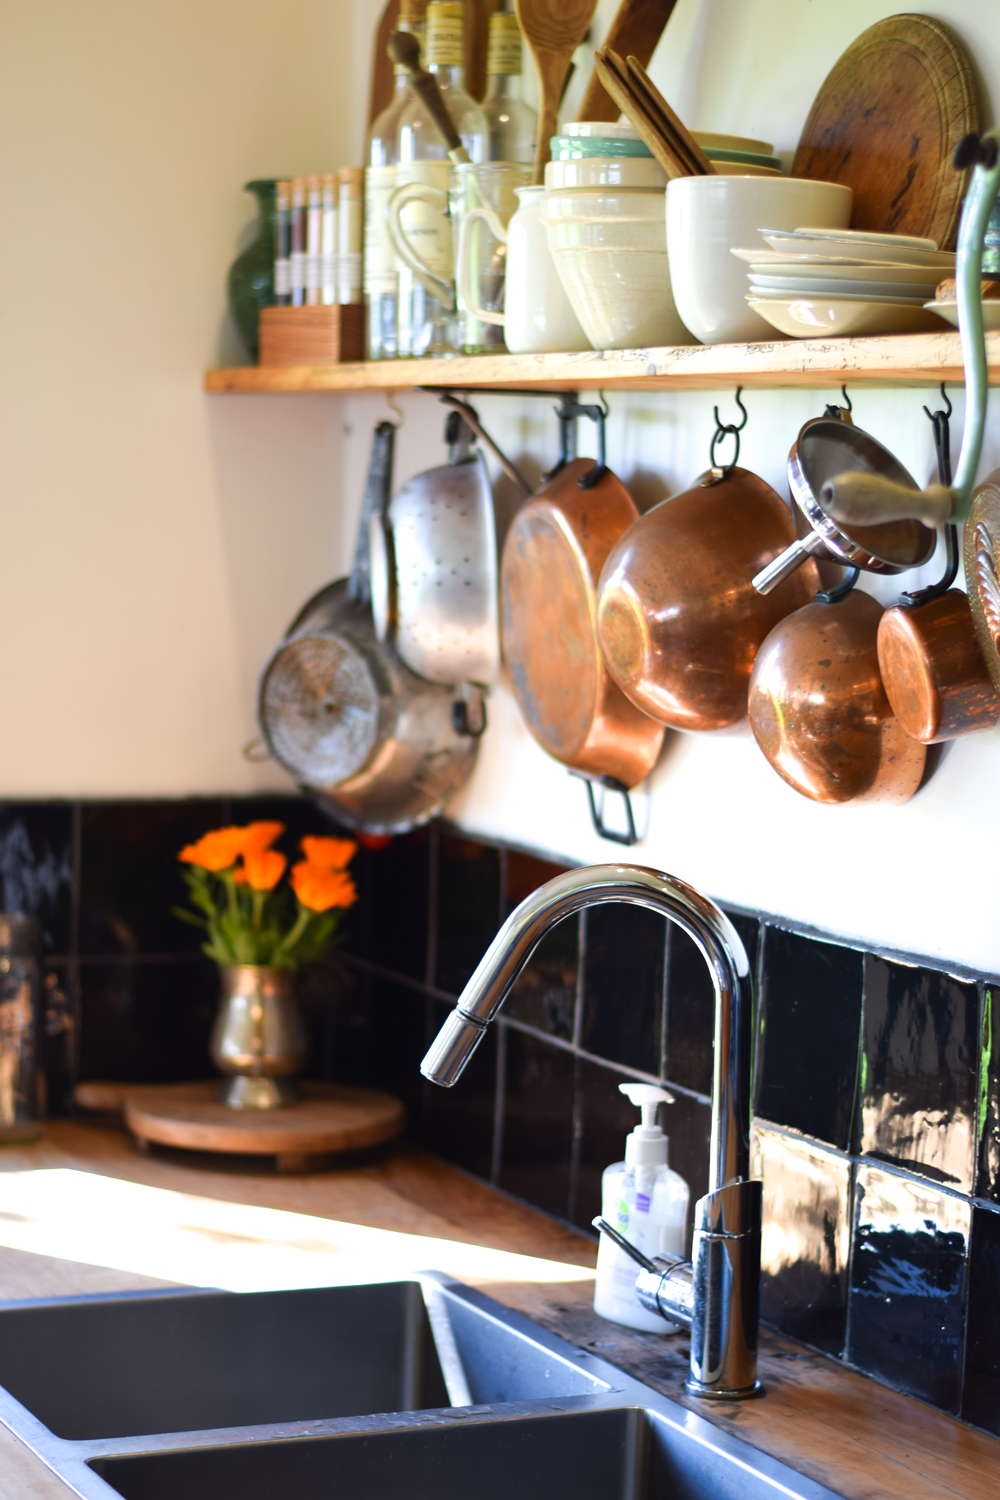 Tamsin's dreamy kitchen